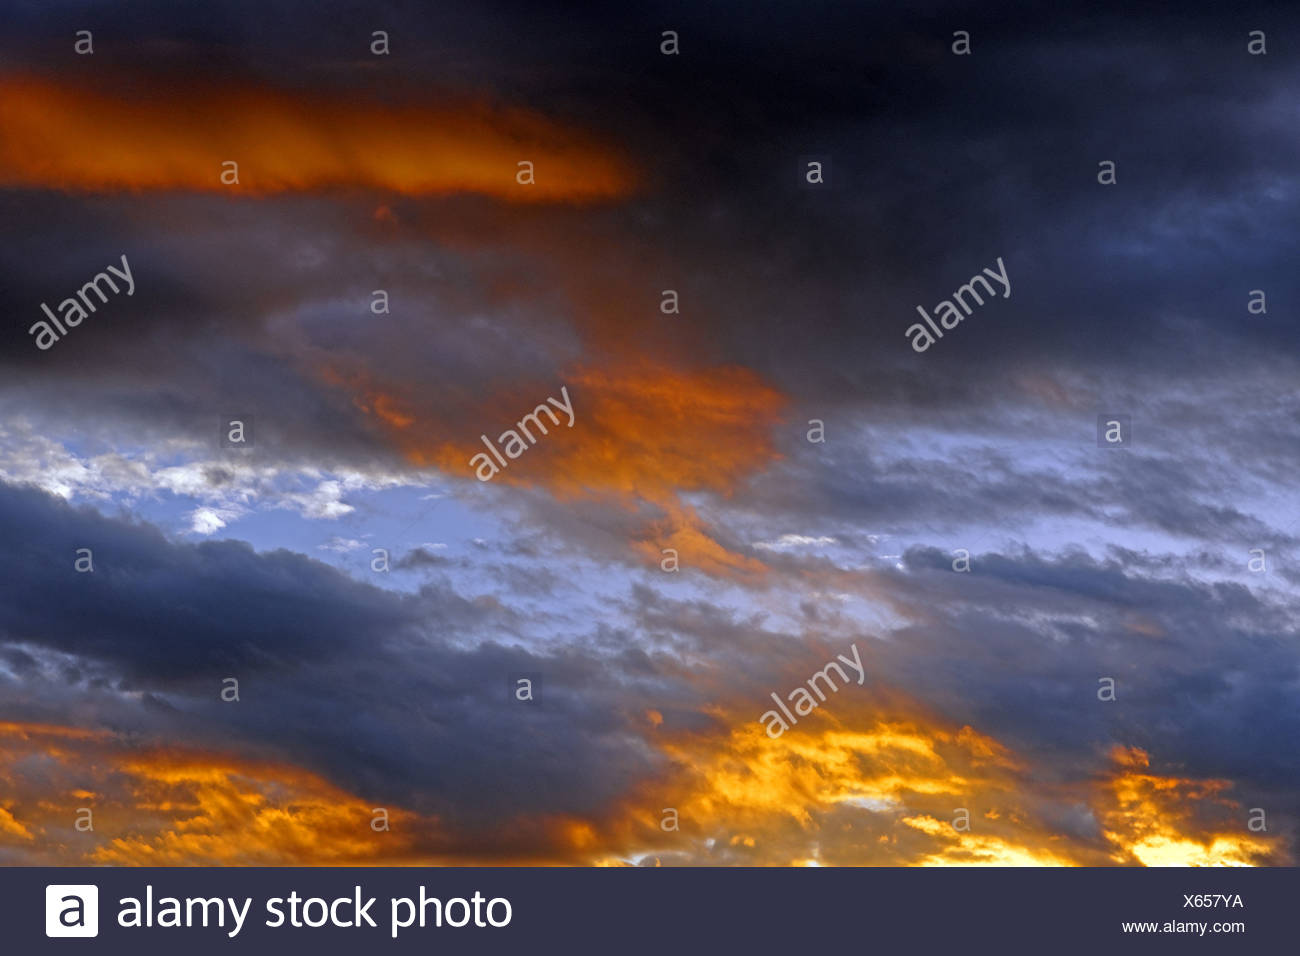 Europe, France, FR, Auvergne, Vichy, evening sky, sky, heaven, mood, clouds, - Stock Image